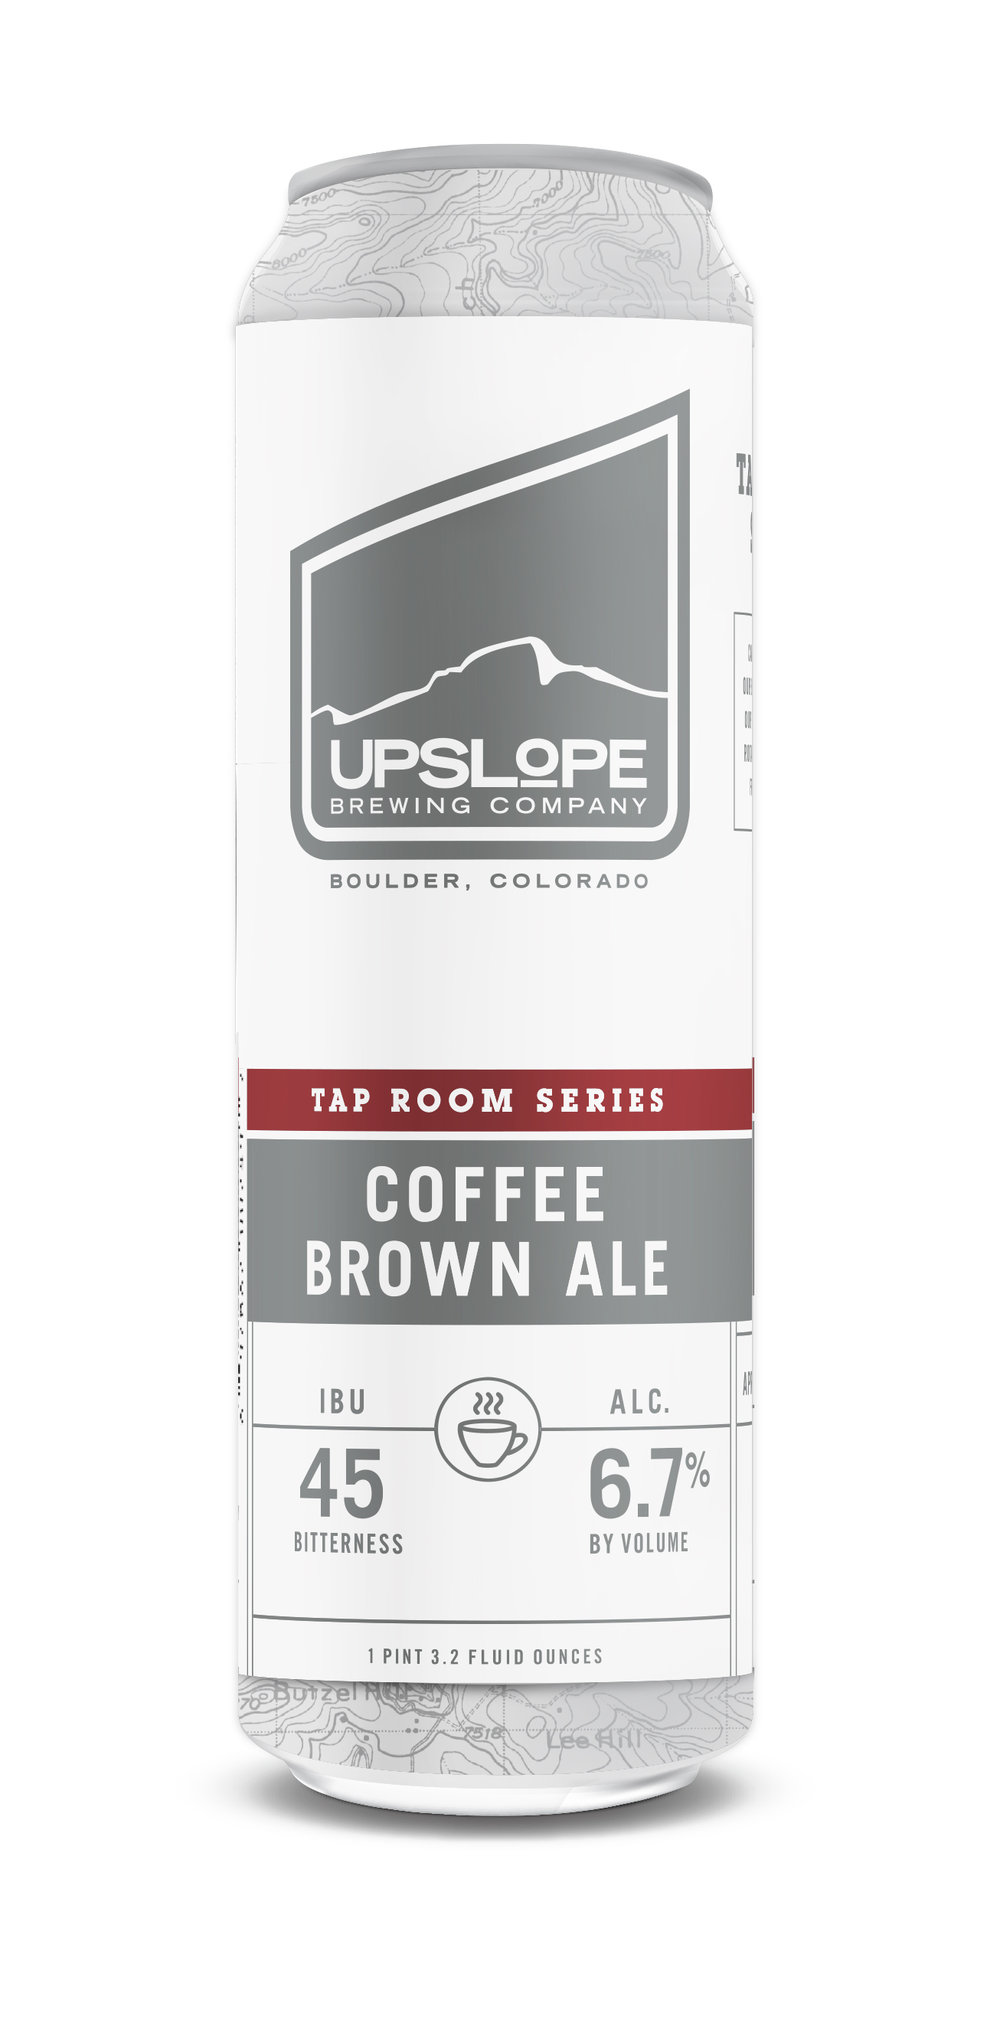 Tap Room Series-Coffee Brown Ale-19.2 oz can.jpg